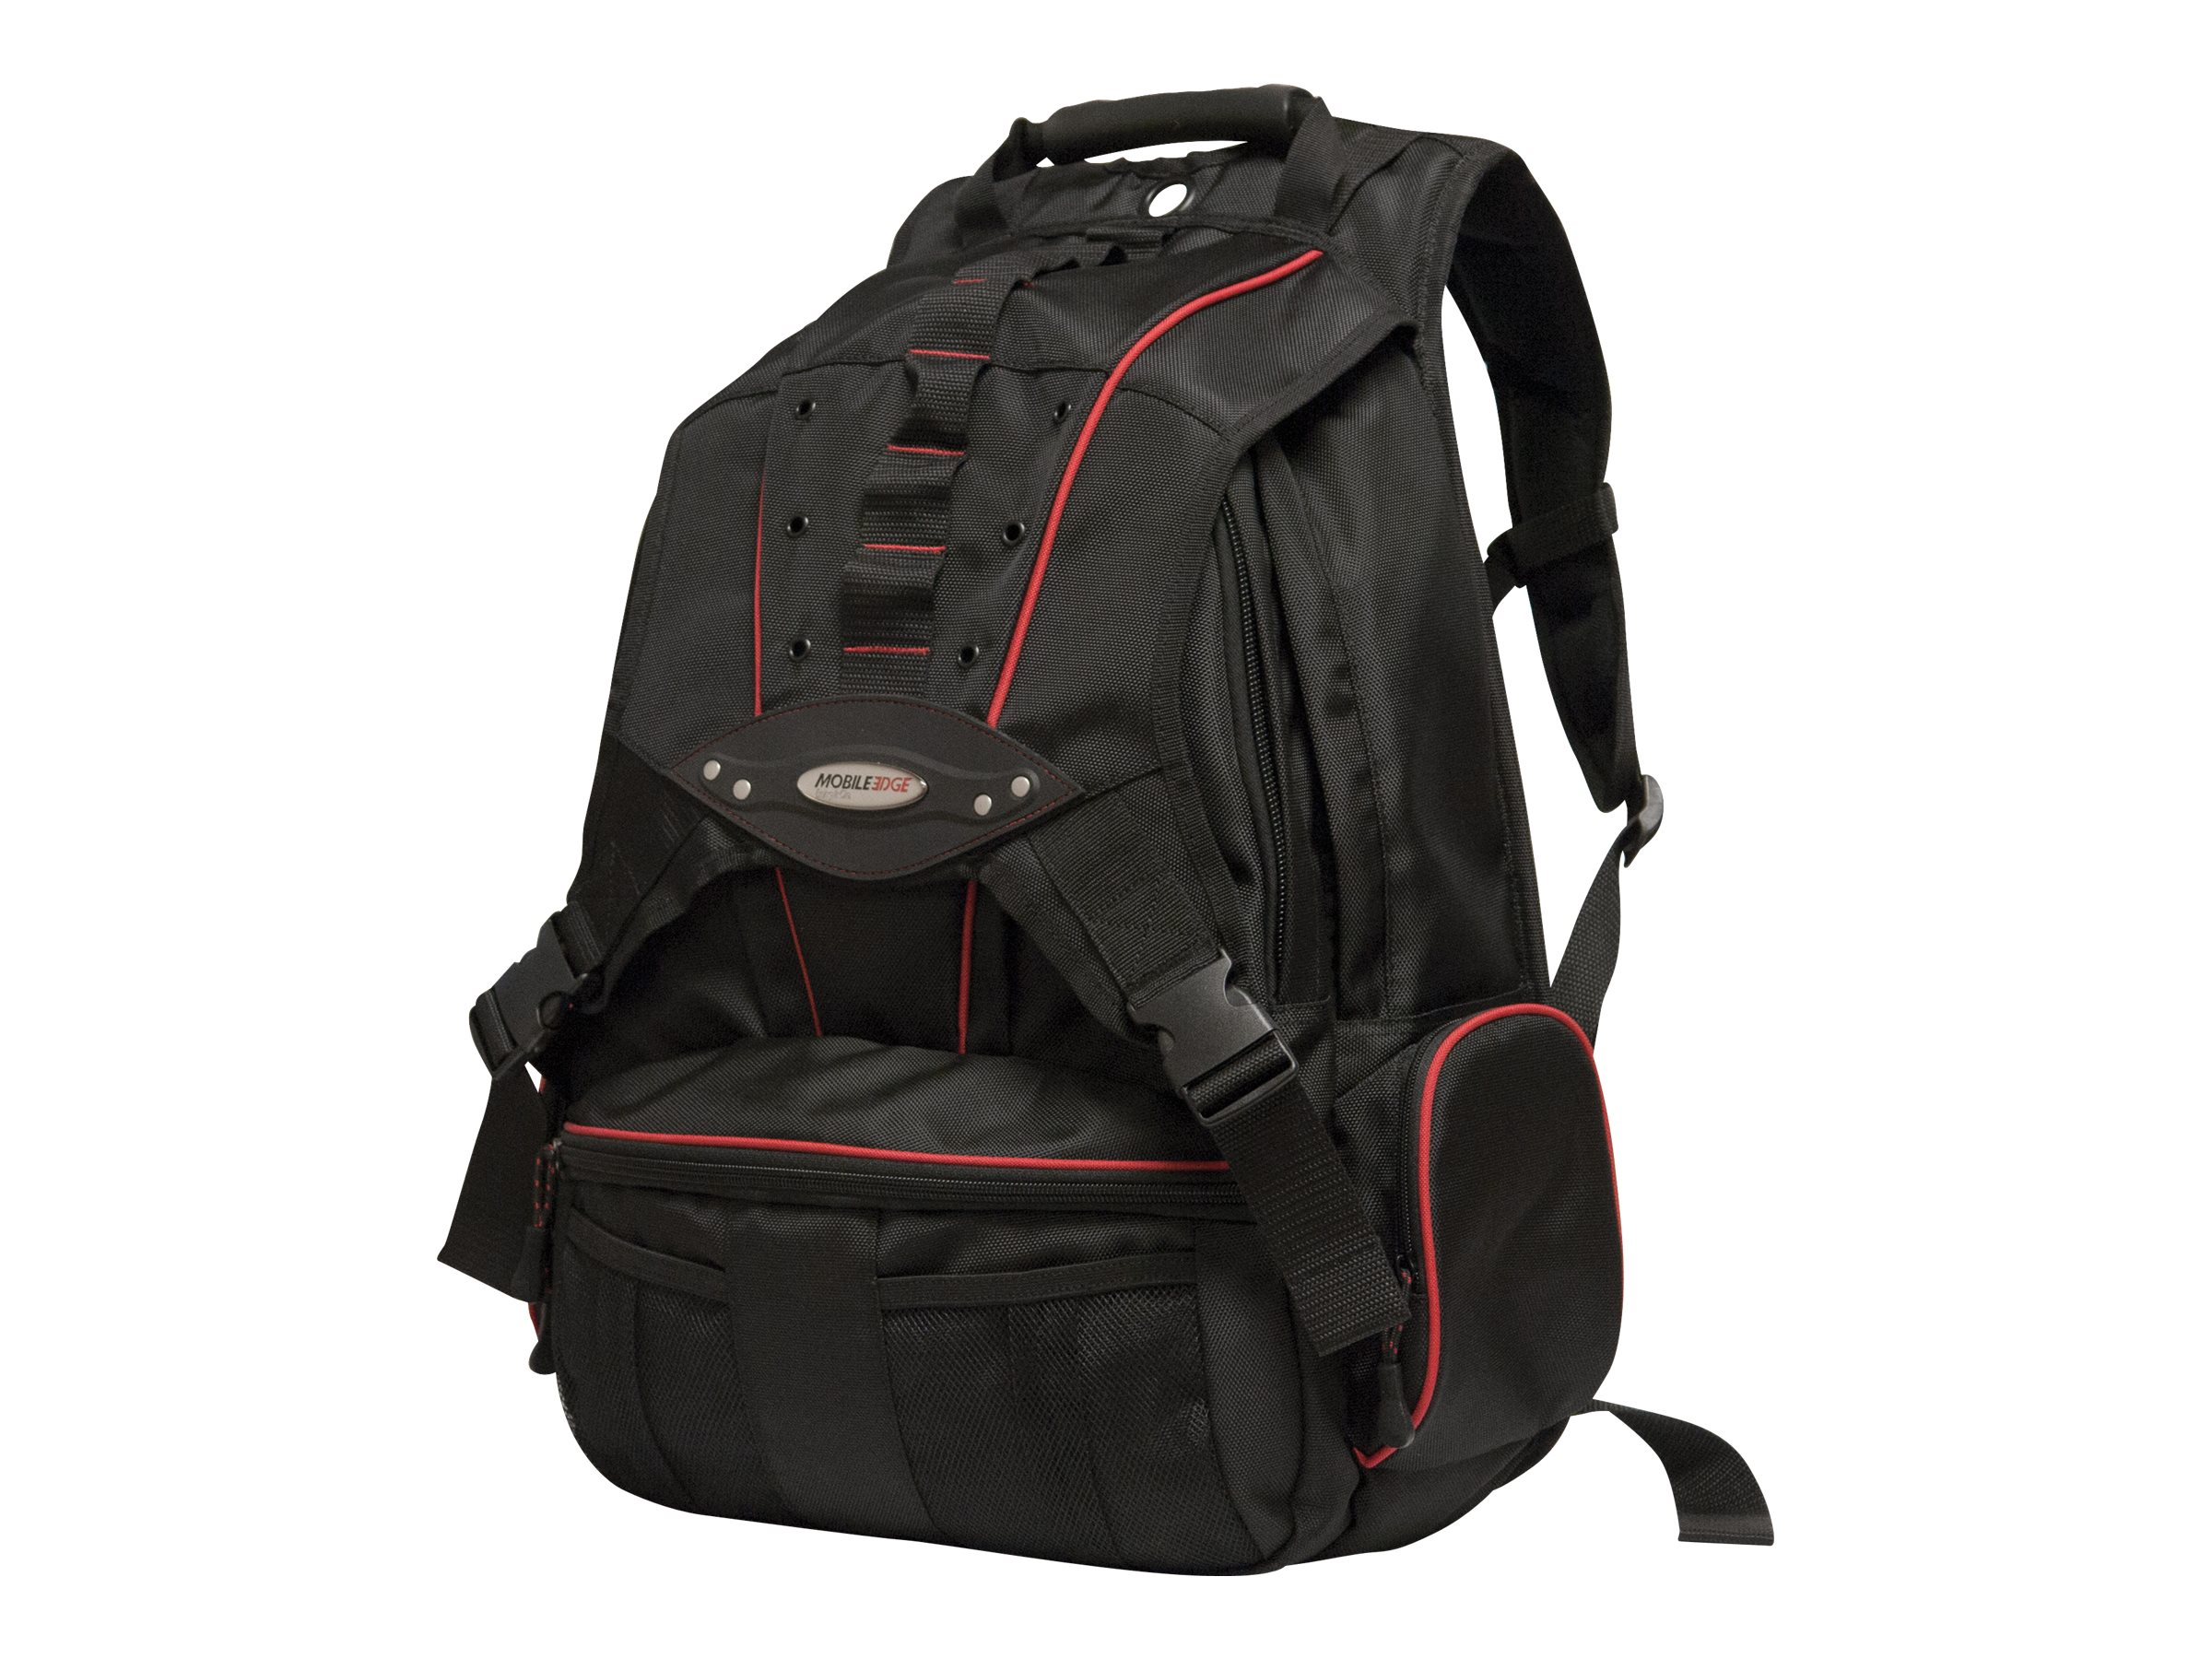 Mobile Edge 17.3 Premium Backpack Black Red